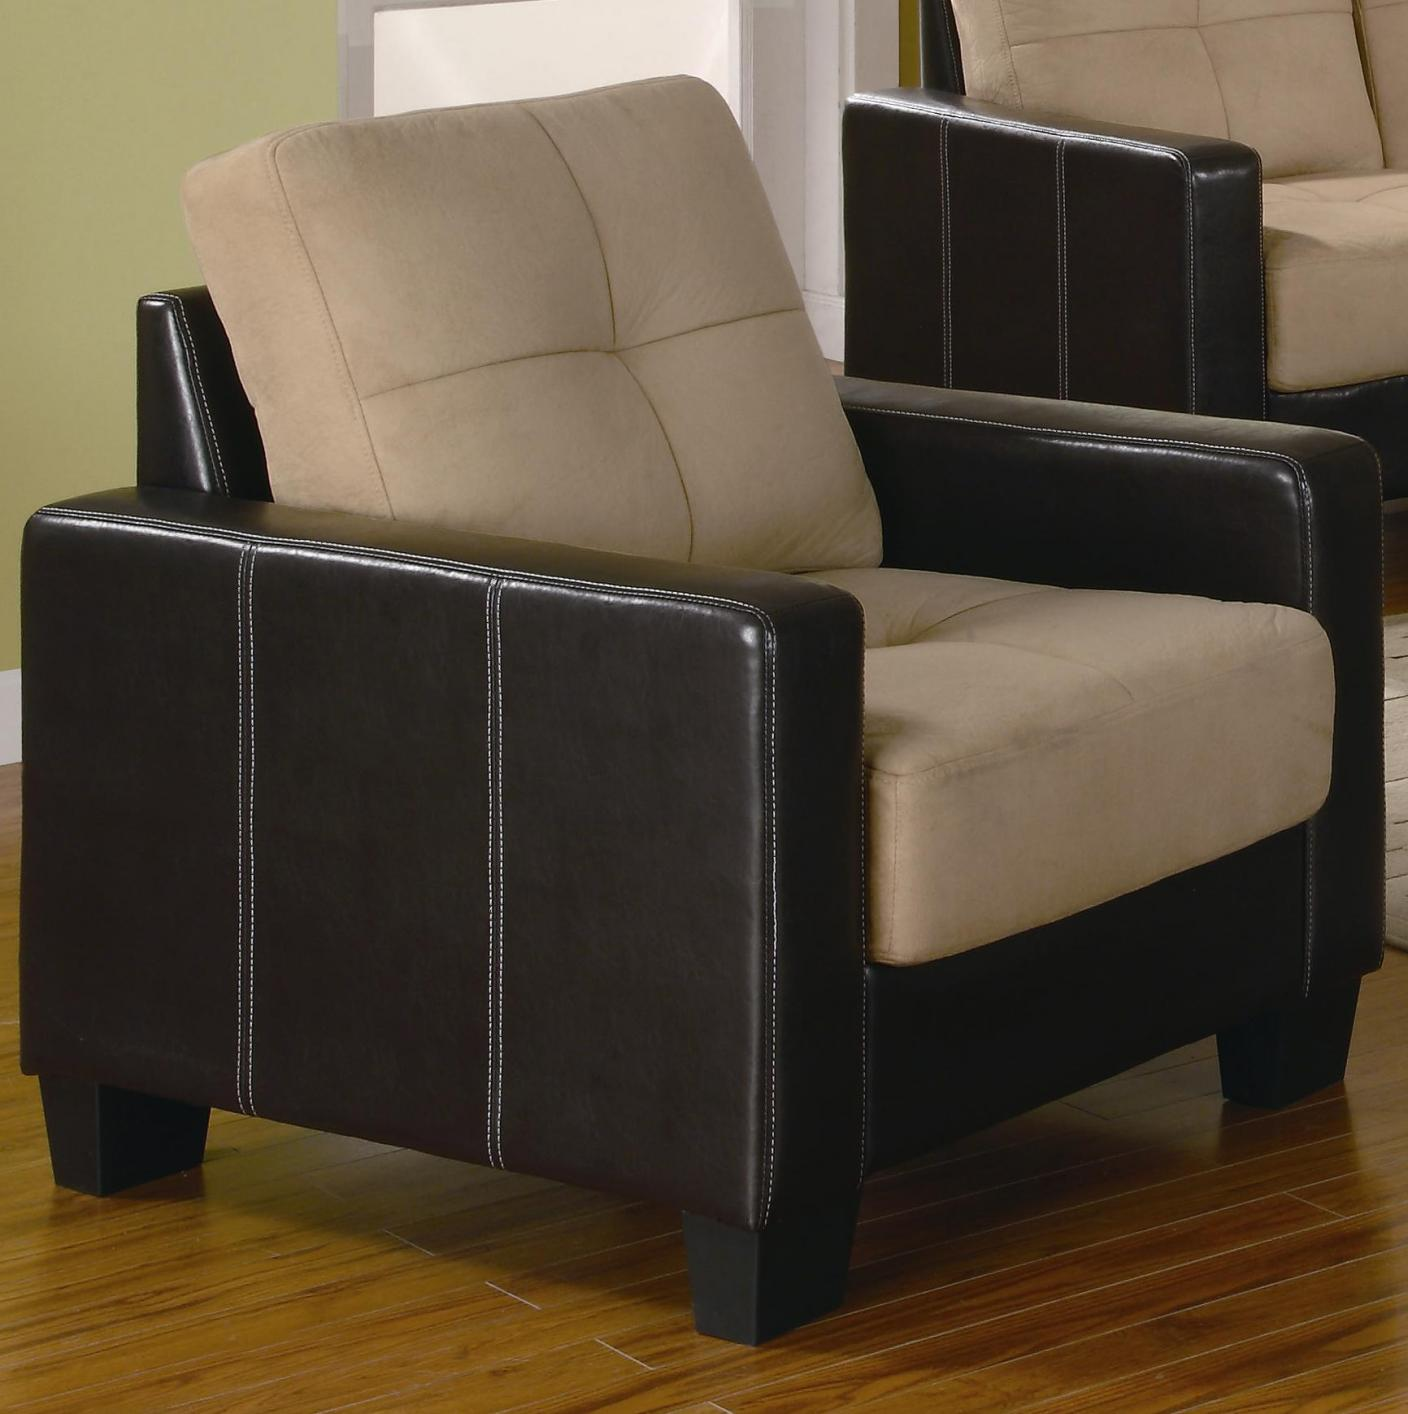 Beige Leather Sofa Loveseat And Chair Set